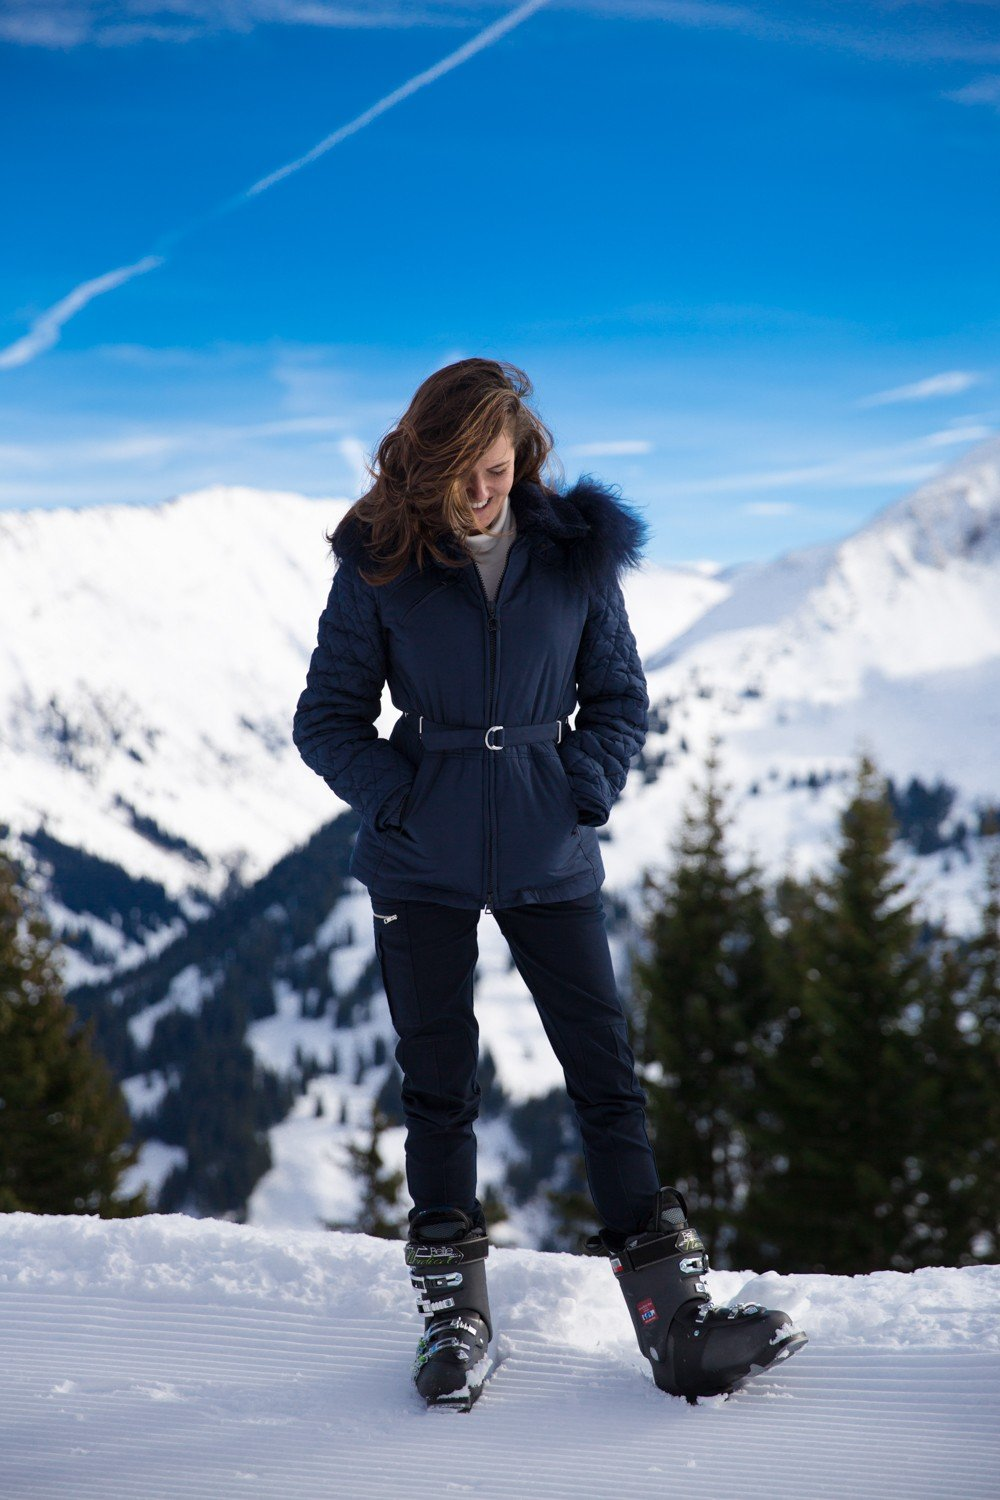 Gstaad-7